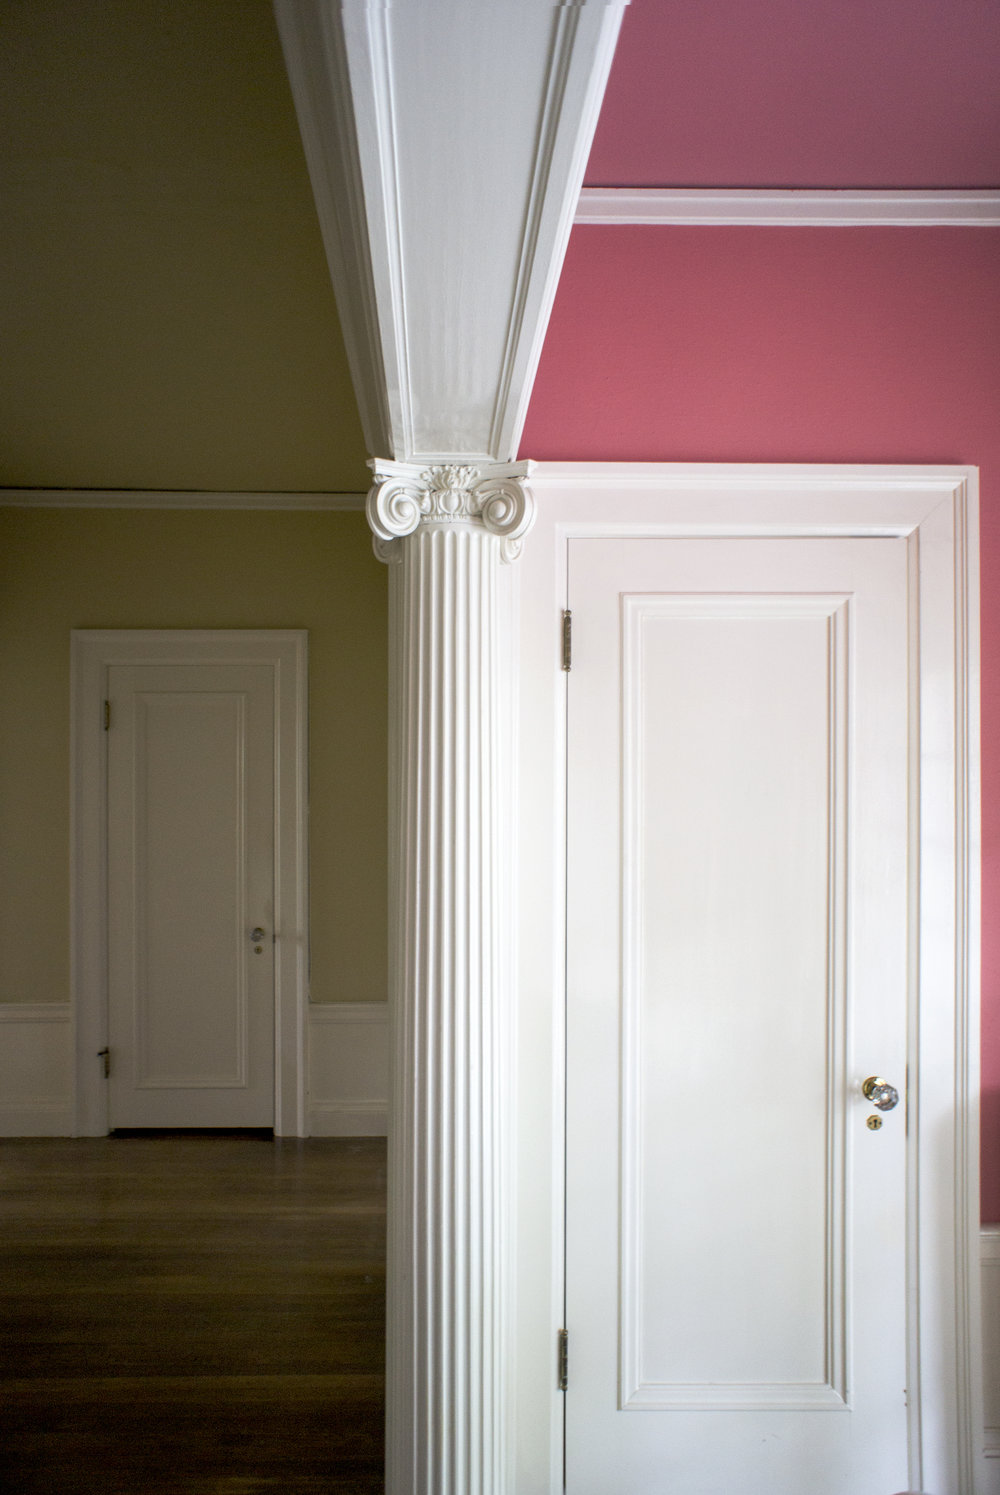 Ionic columns mark passageways throughout the interior of the house. This one separates the upper hall from a small sitting alcove.